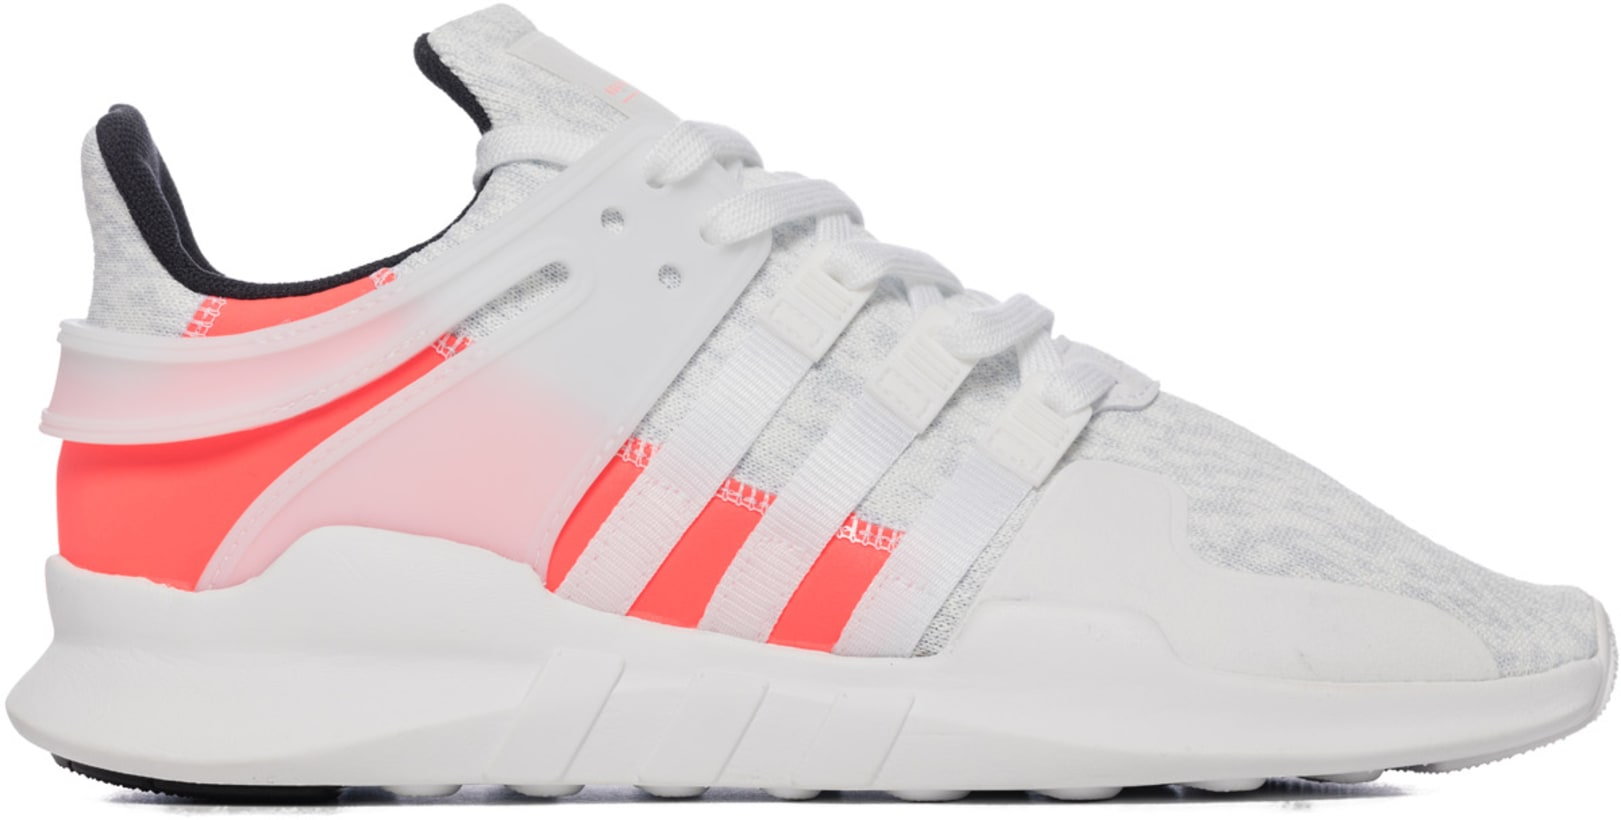 a8d1d3e70 adidas Originals  Eqt Support Adv - Crystal White Cloud White Turbo ...